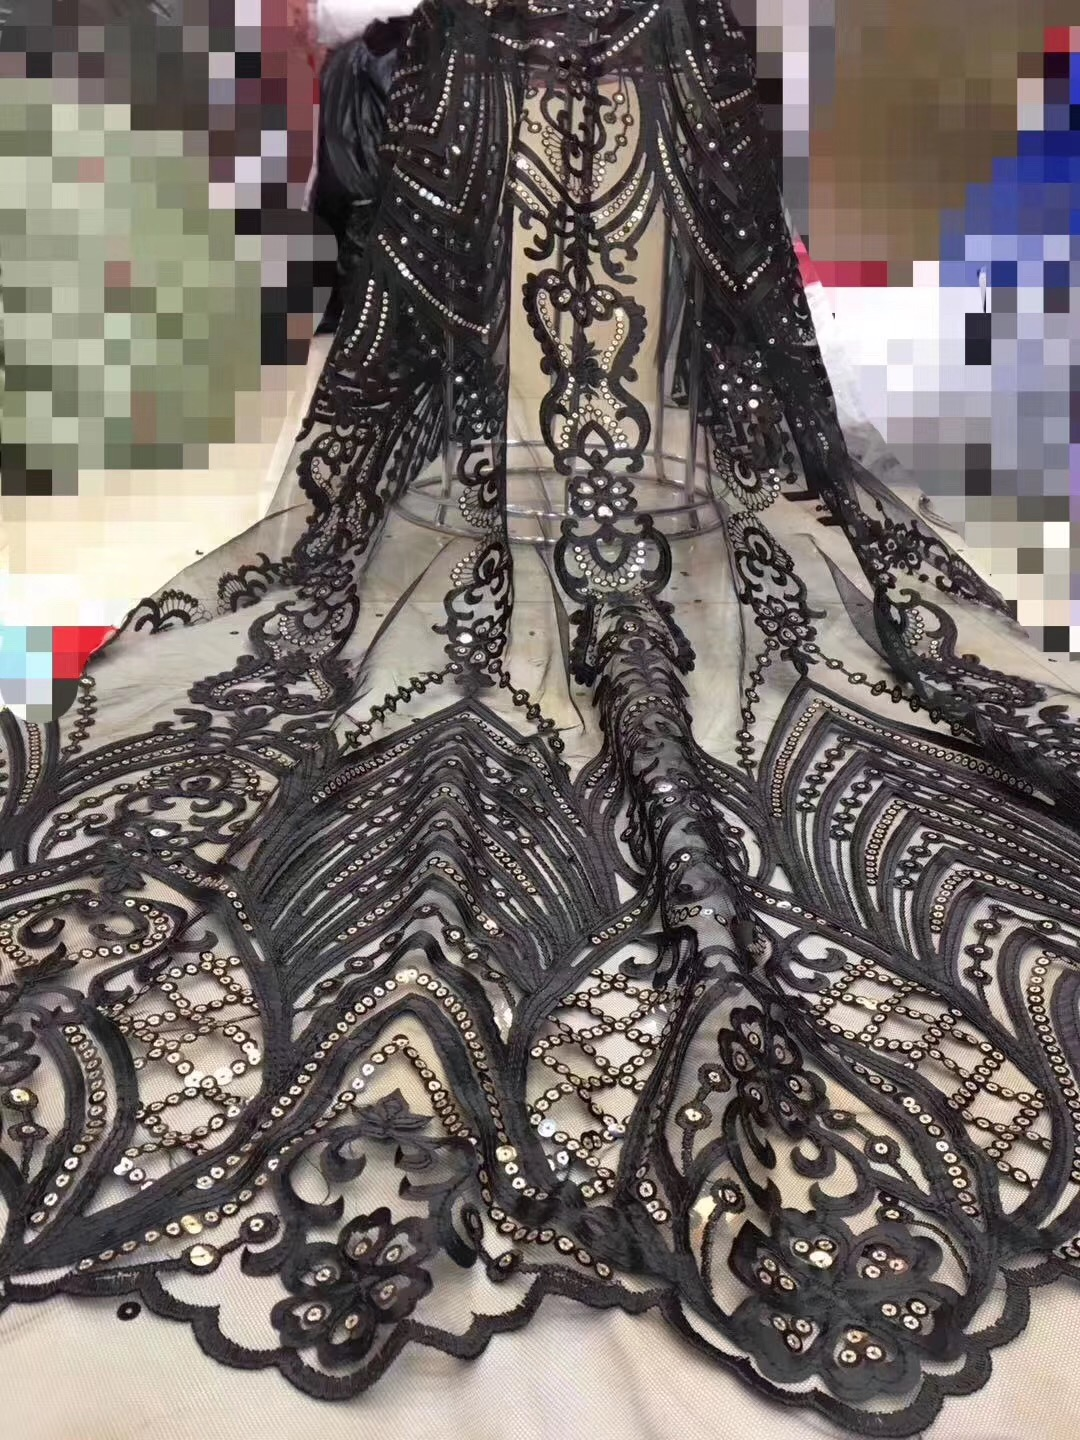 Beautifical french lace fabrics 2019 popular exquisite nigerian lace fabric for dress net lace french sequins fabric ML1N806Beautifical french lace fabrics 2019 popular exquisite nigerian lace fabric for dress net lace french sequins fabric ML1N806